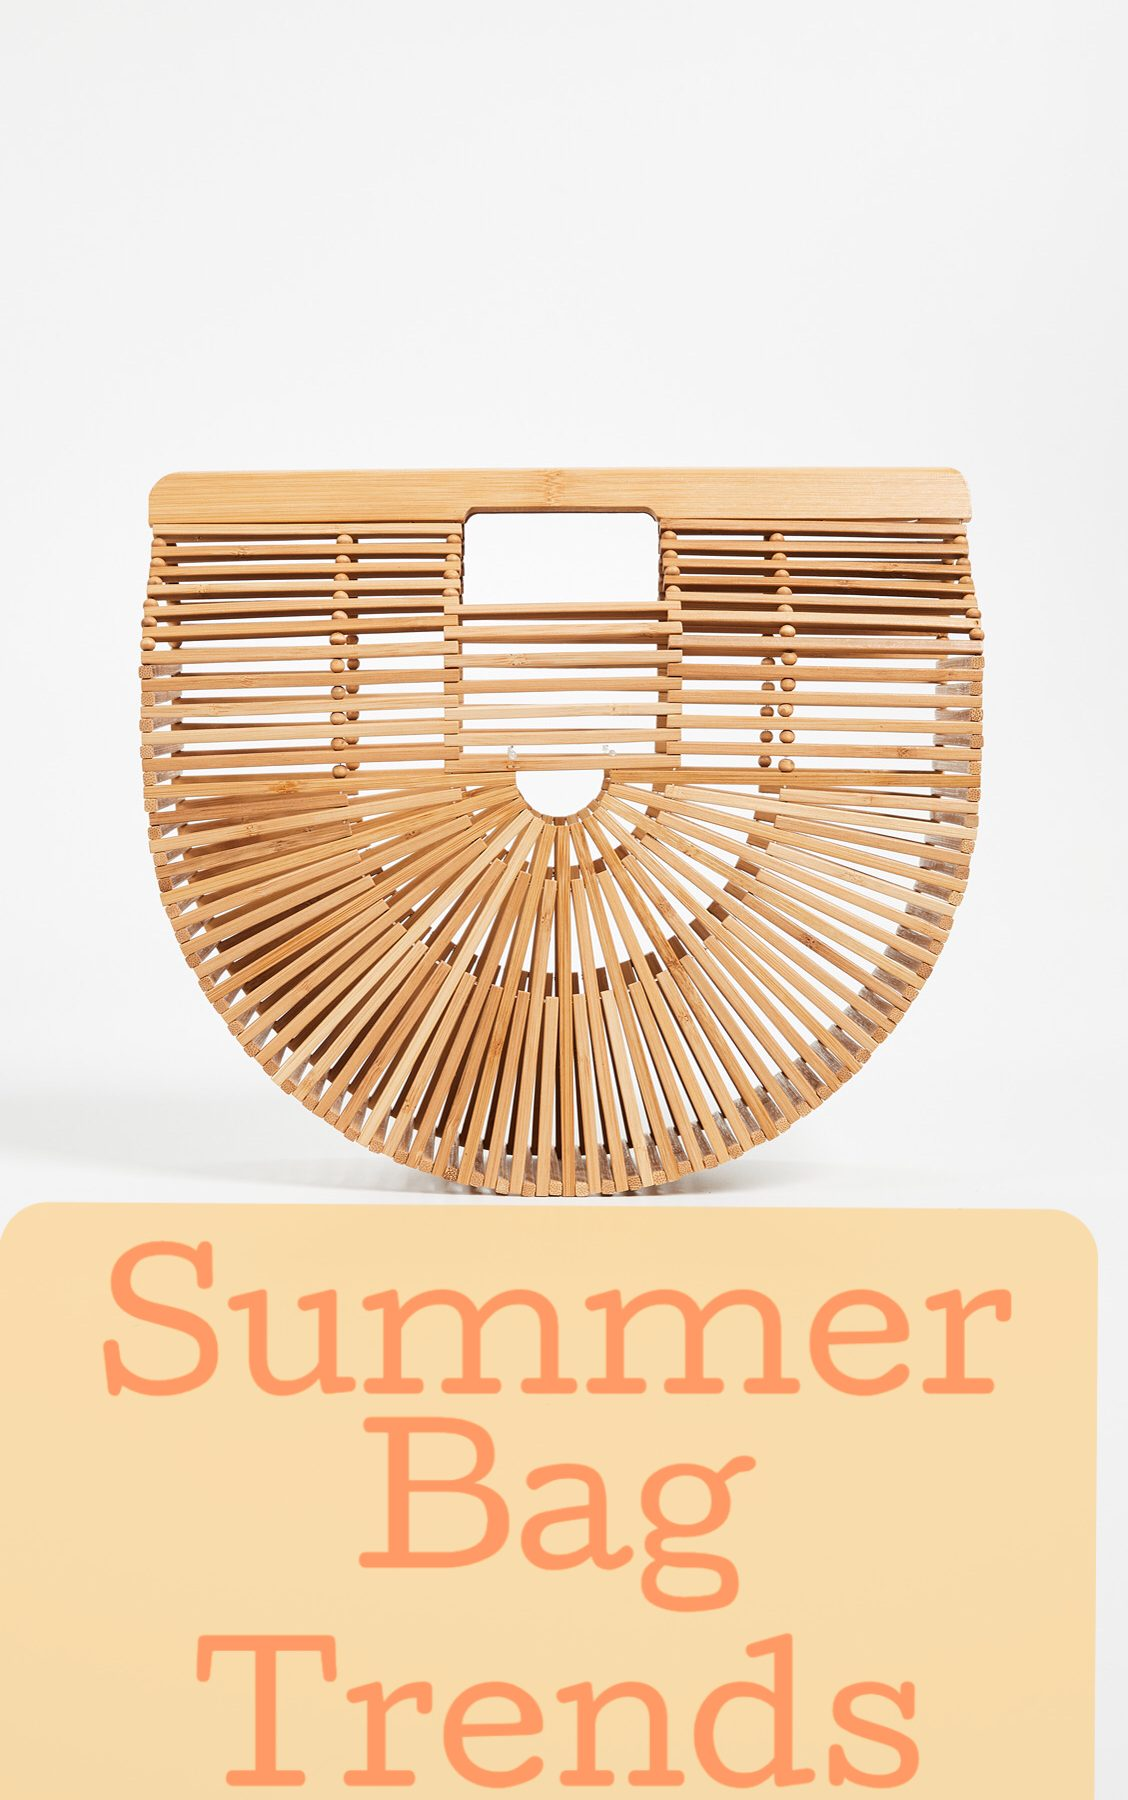 The Bag Trend that everyone is wearing in spring and summer 2018. Bamboo and wicker bags are on trend. The original was the Cult Gaia Ark Bamboo Bag and it has inspired many more styles by various brands at inexpensive prices. Every fashion blogger has a various version of the bamboo or wicker bag.